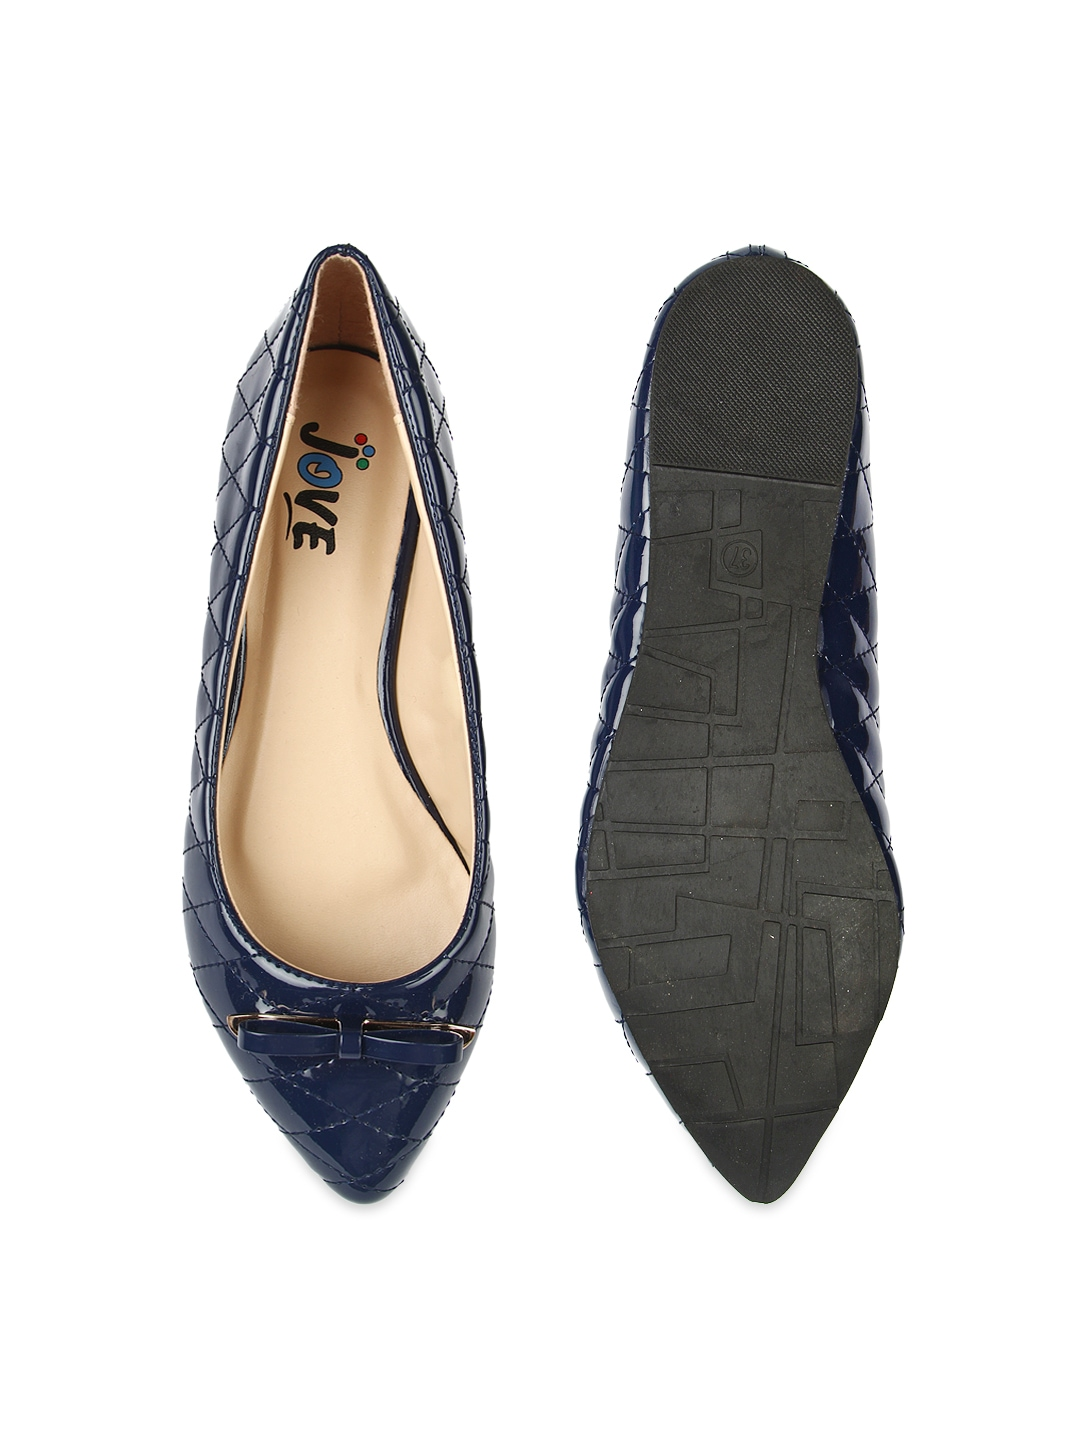 Shop for navy blue flats women online at Target. Free shipping on purchases over $35 and save 5% every day with your Target REDcard. Target / Shoes / navy blue flats women (14) Girls' Omega Ballet Flats - Cat & Jack™ Navy. Cat & Jack™.